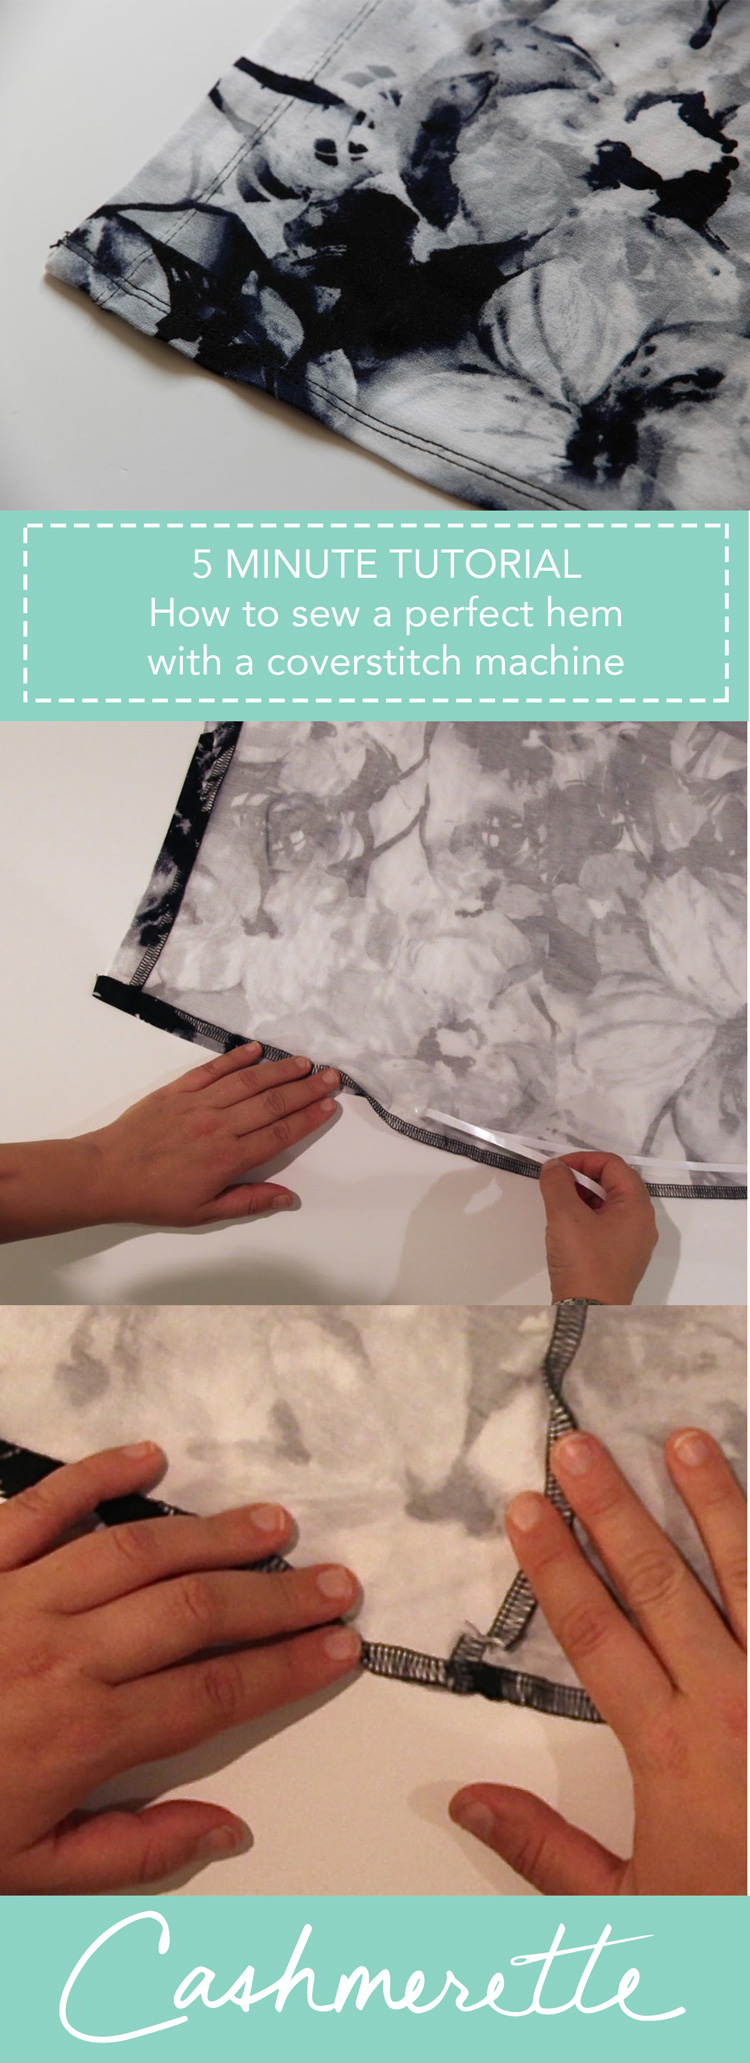 How to sew a perfect hem with a coverstitch machine